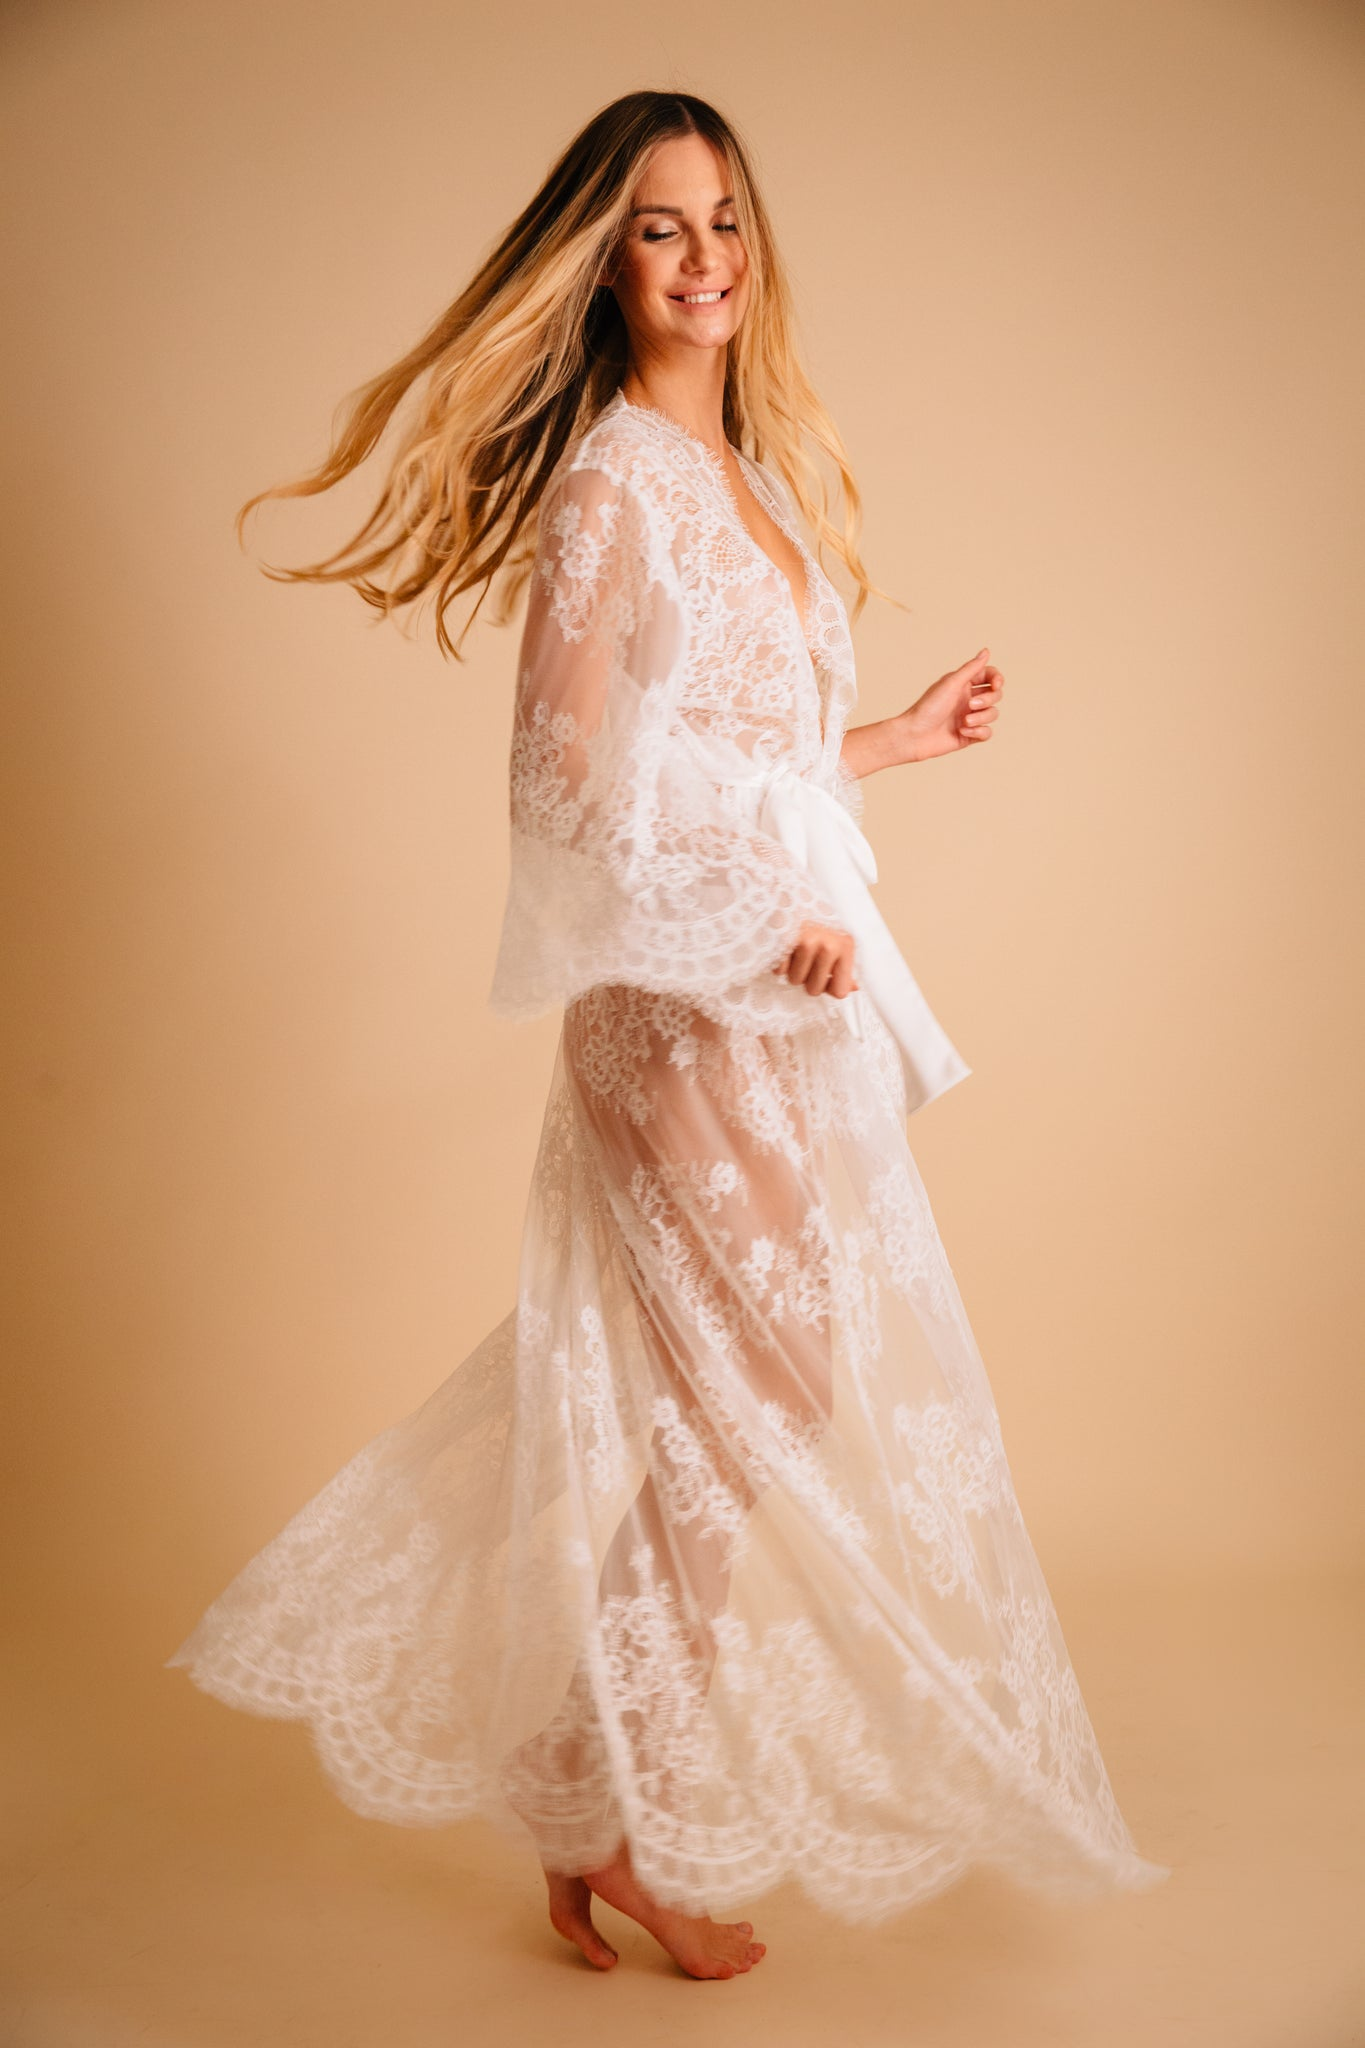 Bridal lace robe